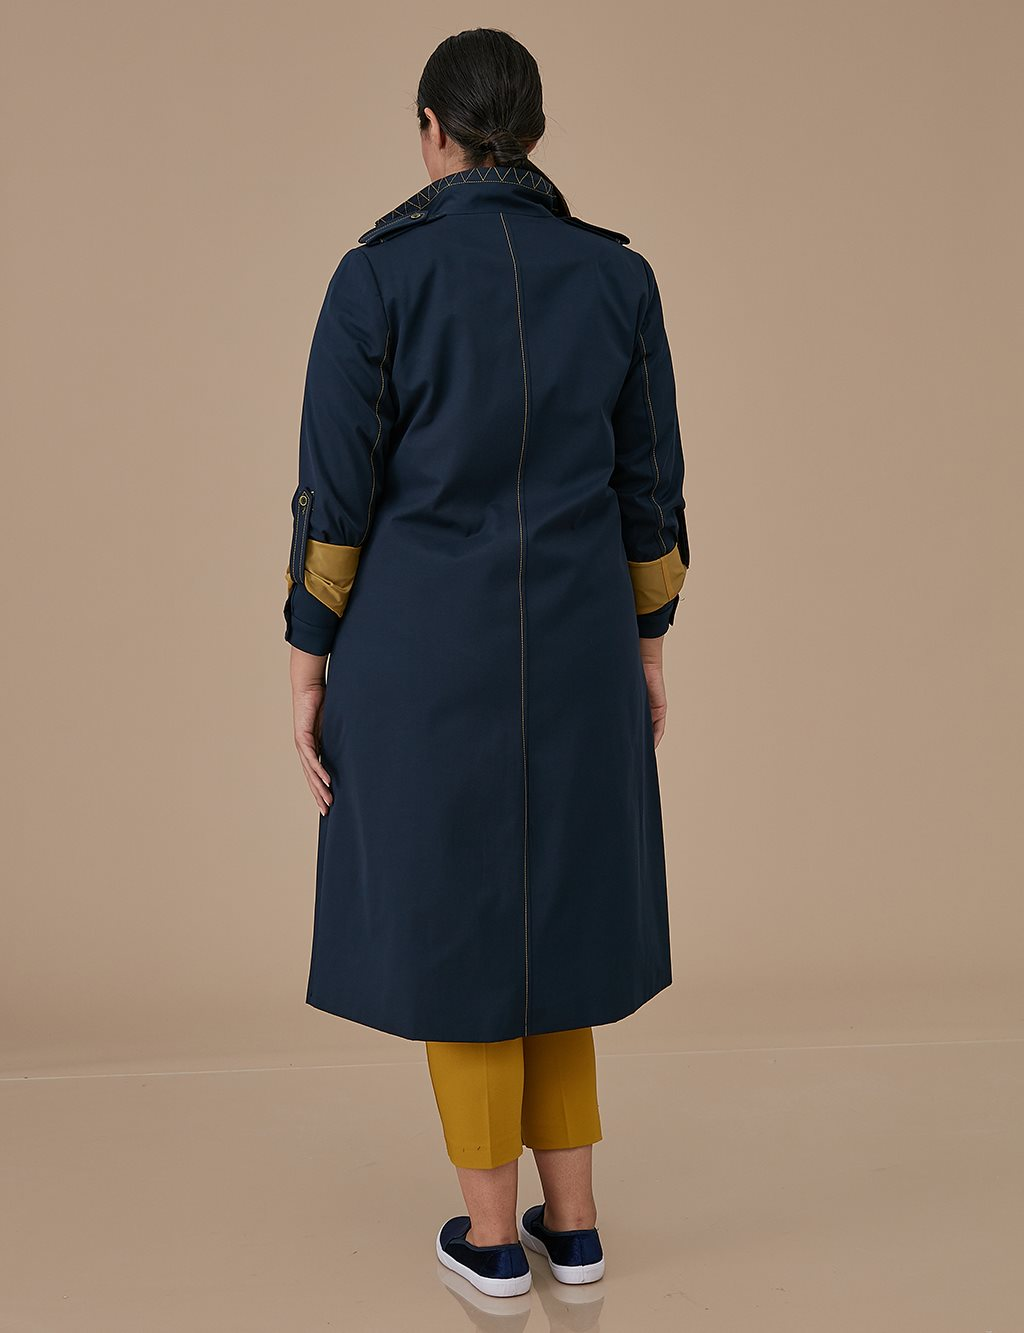 Oversize Raincoat With Zipper A9 14042 Navy